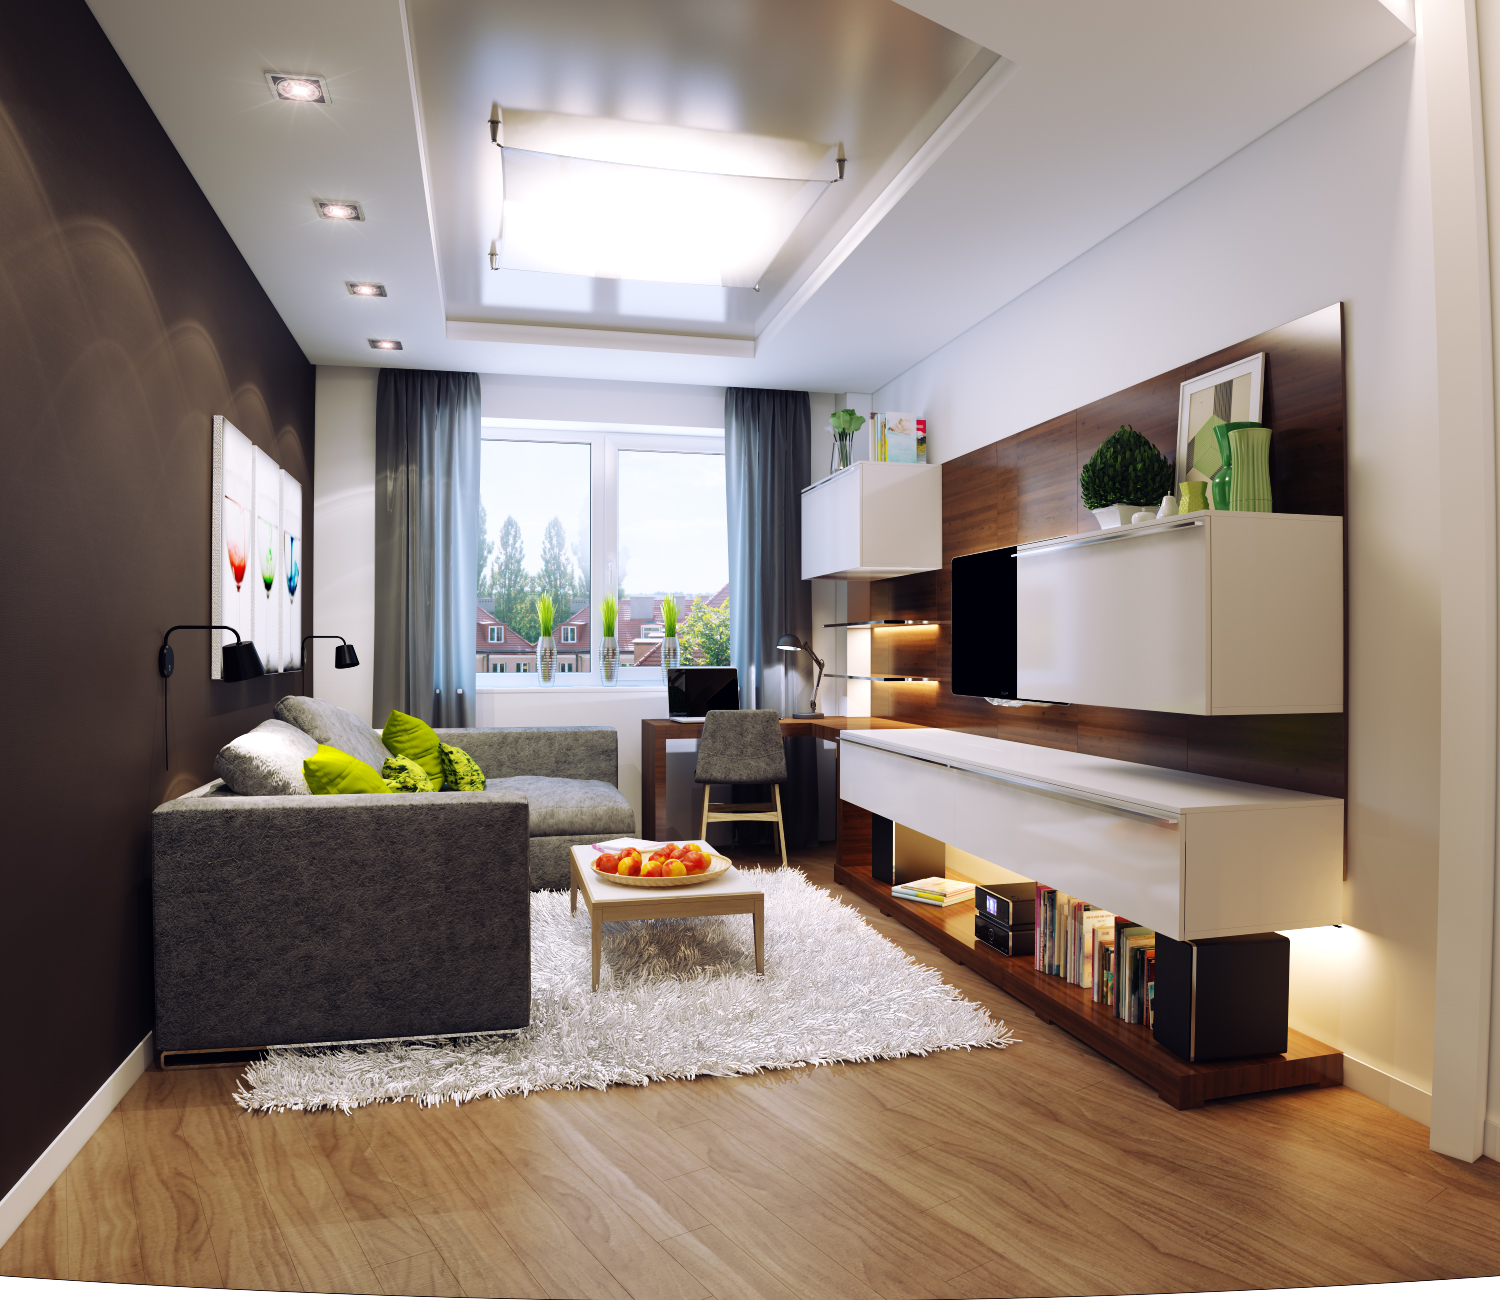 50 Best Small Living Room Design Ideas for 2020 on Small Living Room Decorating Ideas  id=62866